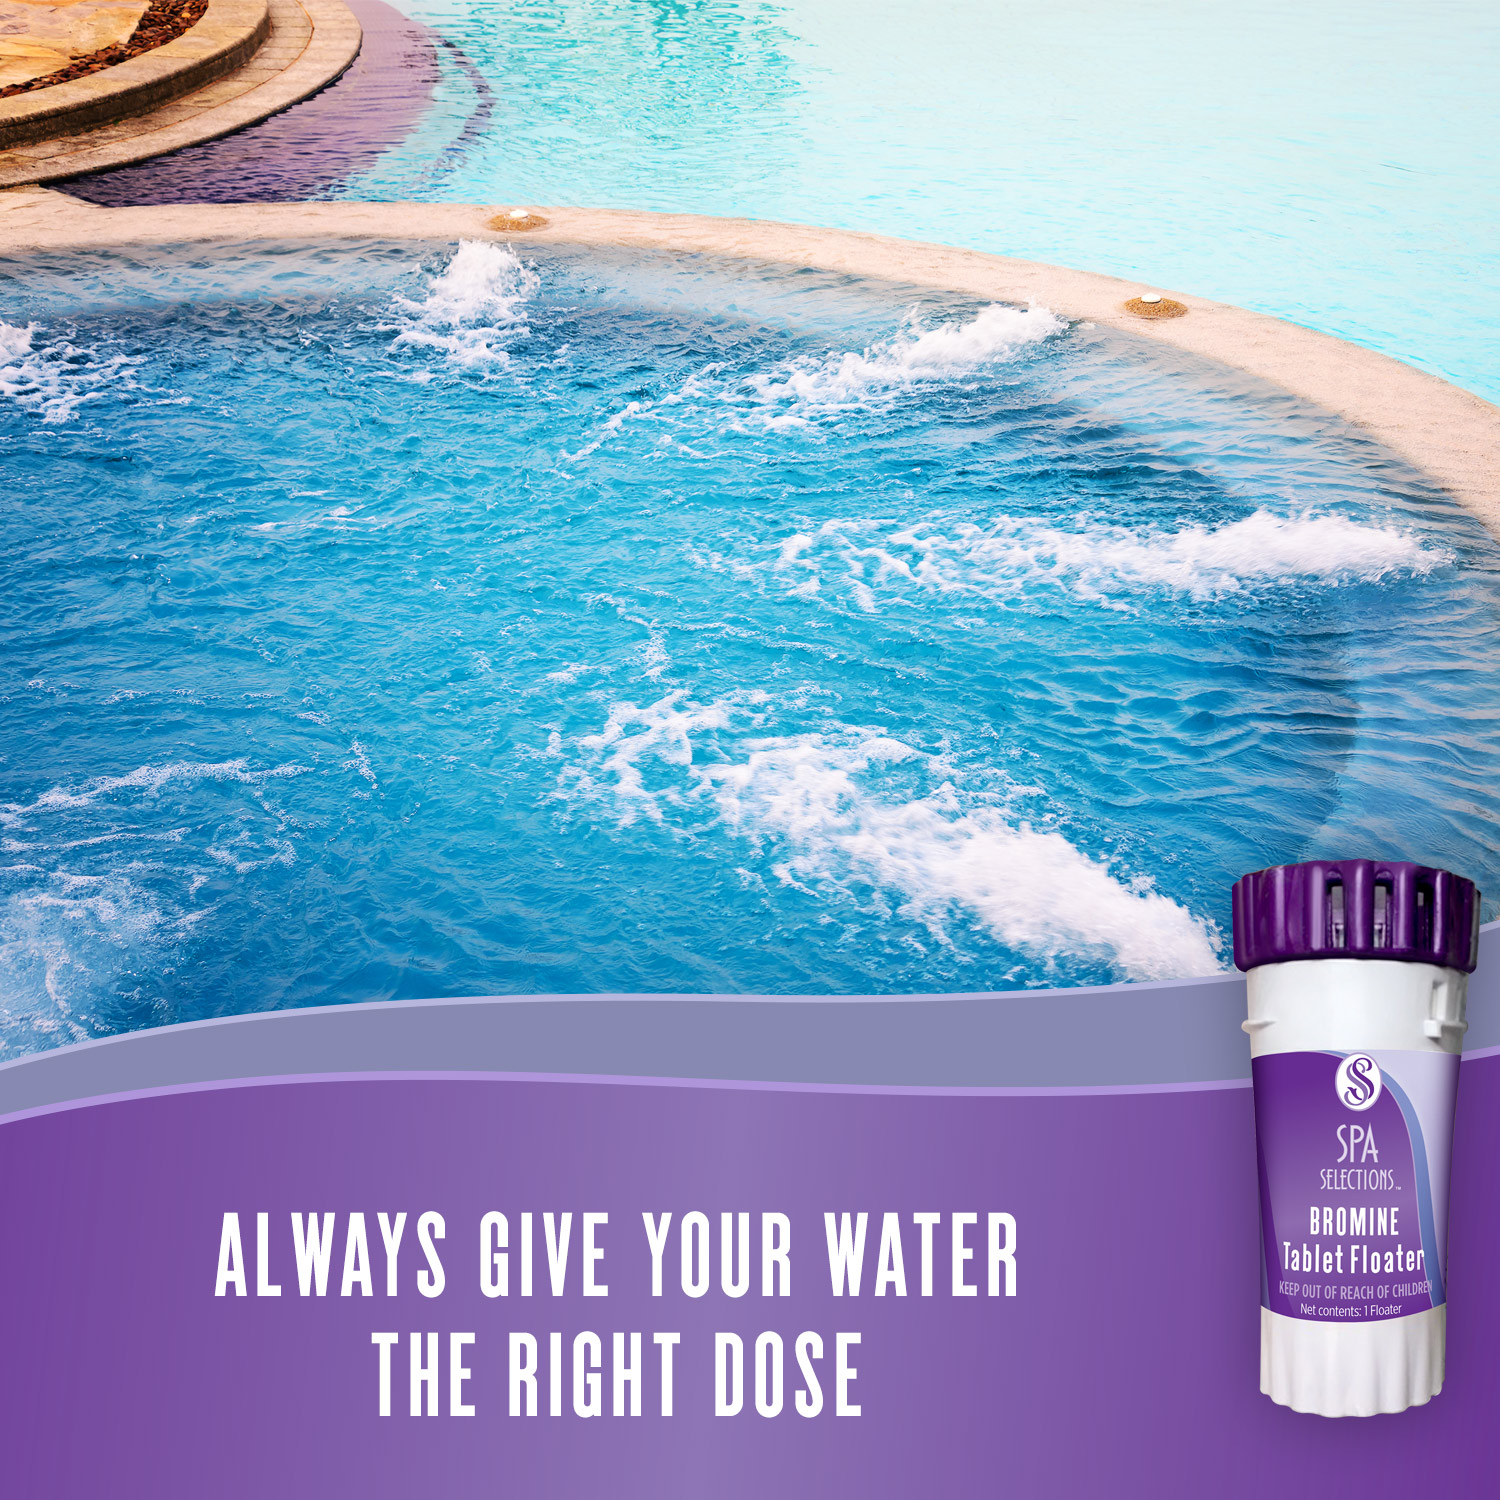 Always give your water the right dose with Spa Selections bromine tablet floater. Photo of outdoor hot tub with jets on and crystal clear water.